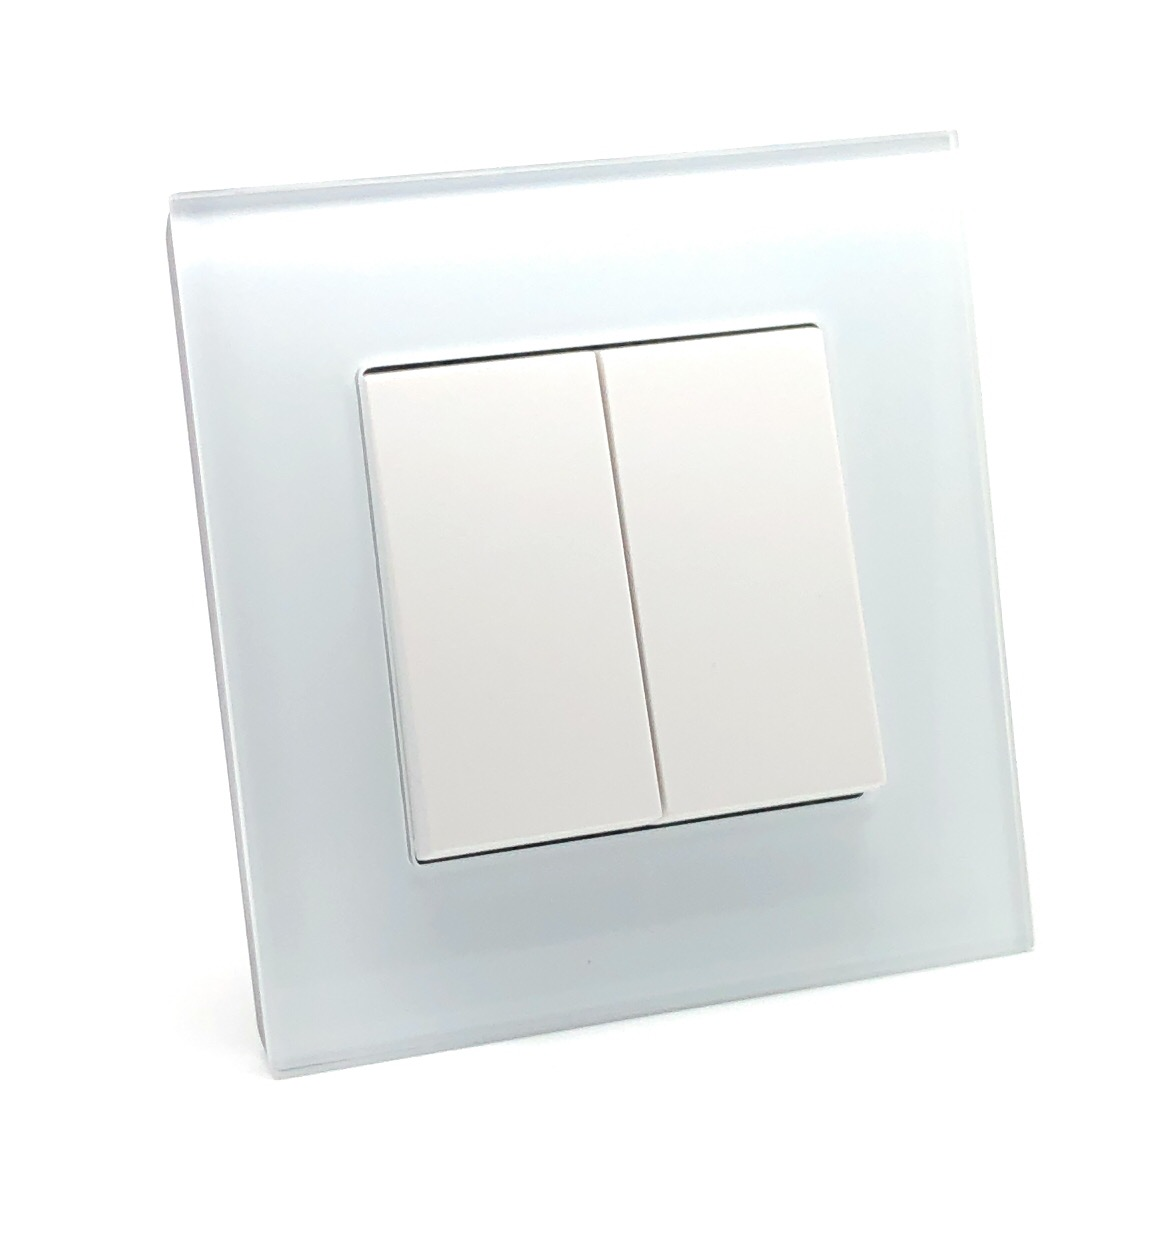 Illucio 2 Gang 1 or 2 Way 10 Amp On/Off Rocker Light Switch White